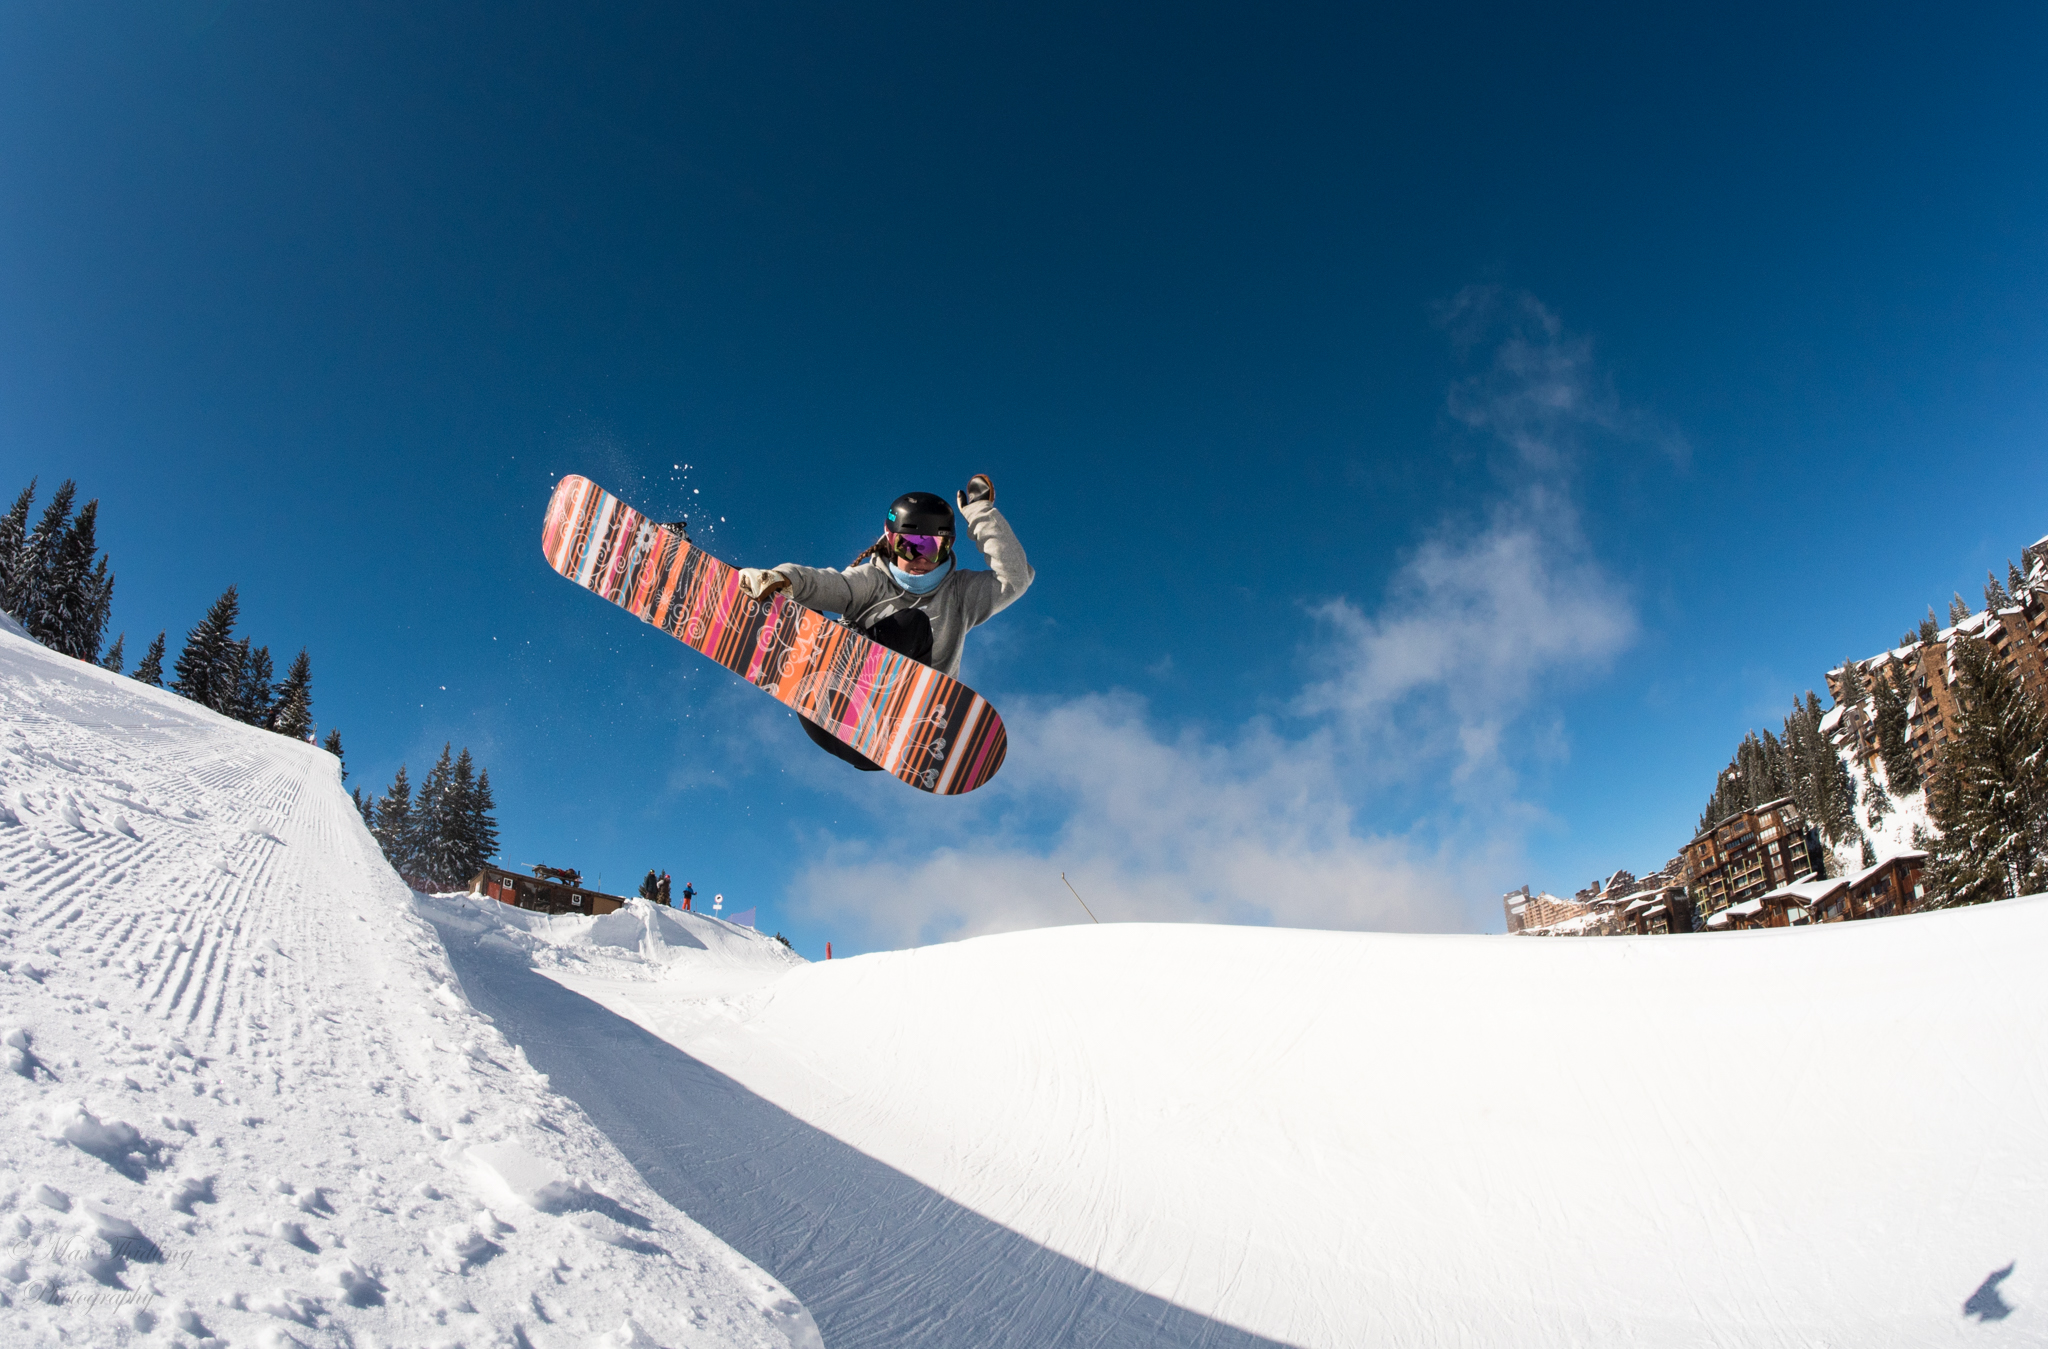 Frontside Indy in Avoriaz shot by Max Thidling